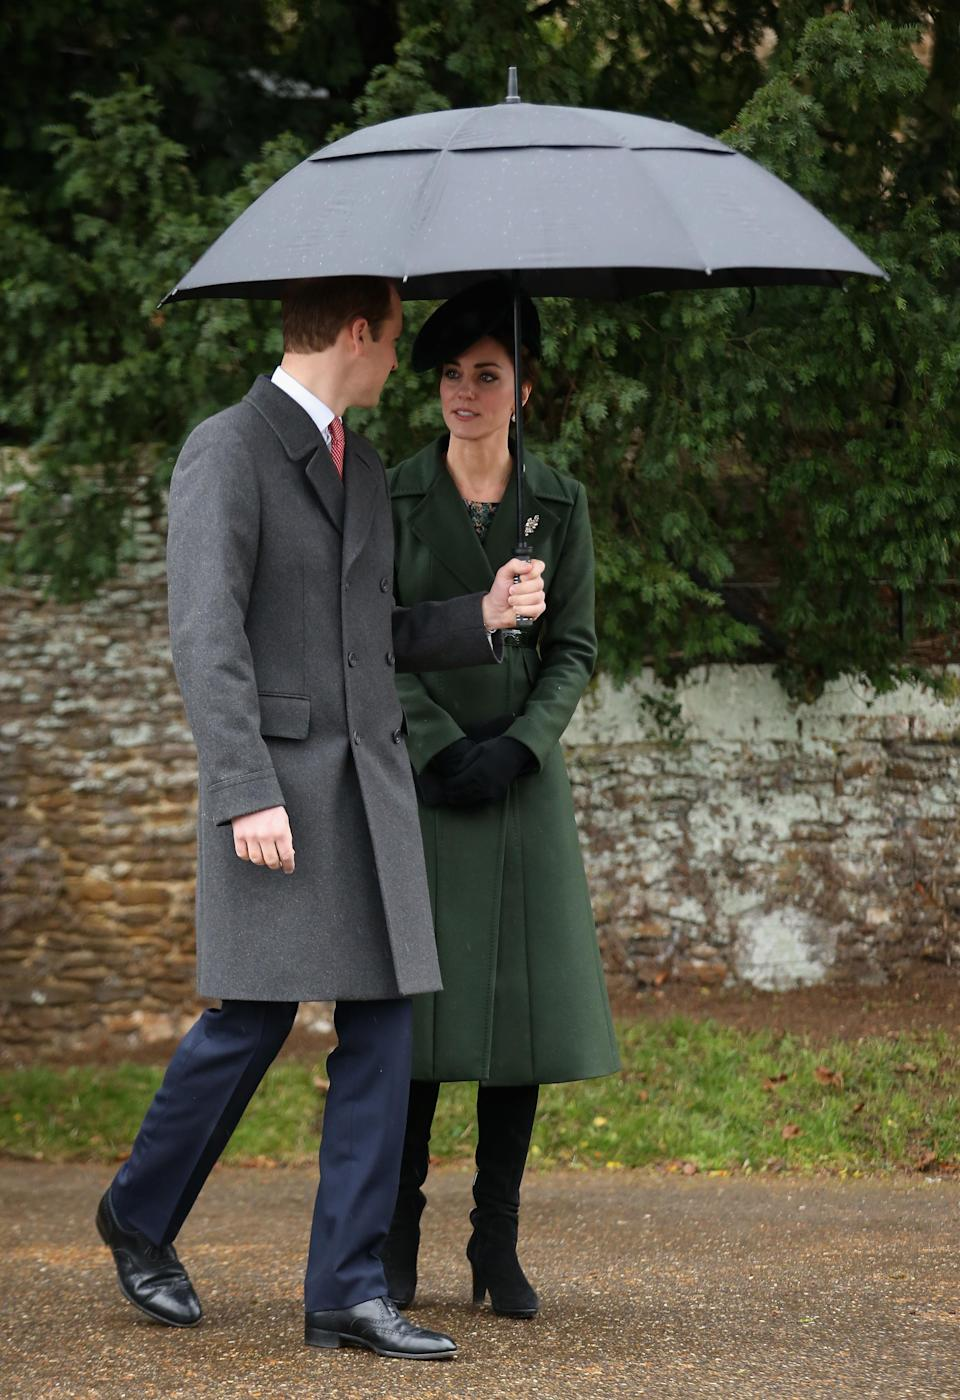 Prince William and Kate Middleton held an umbrella over themselves to greet fans in 2015. Photo: Getty Images